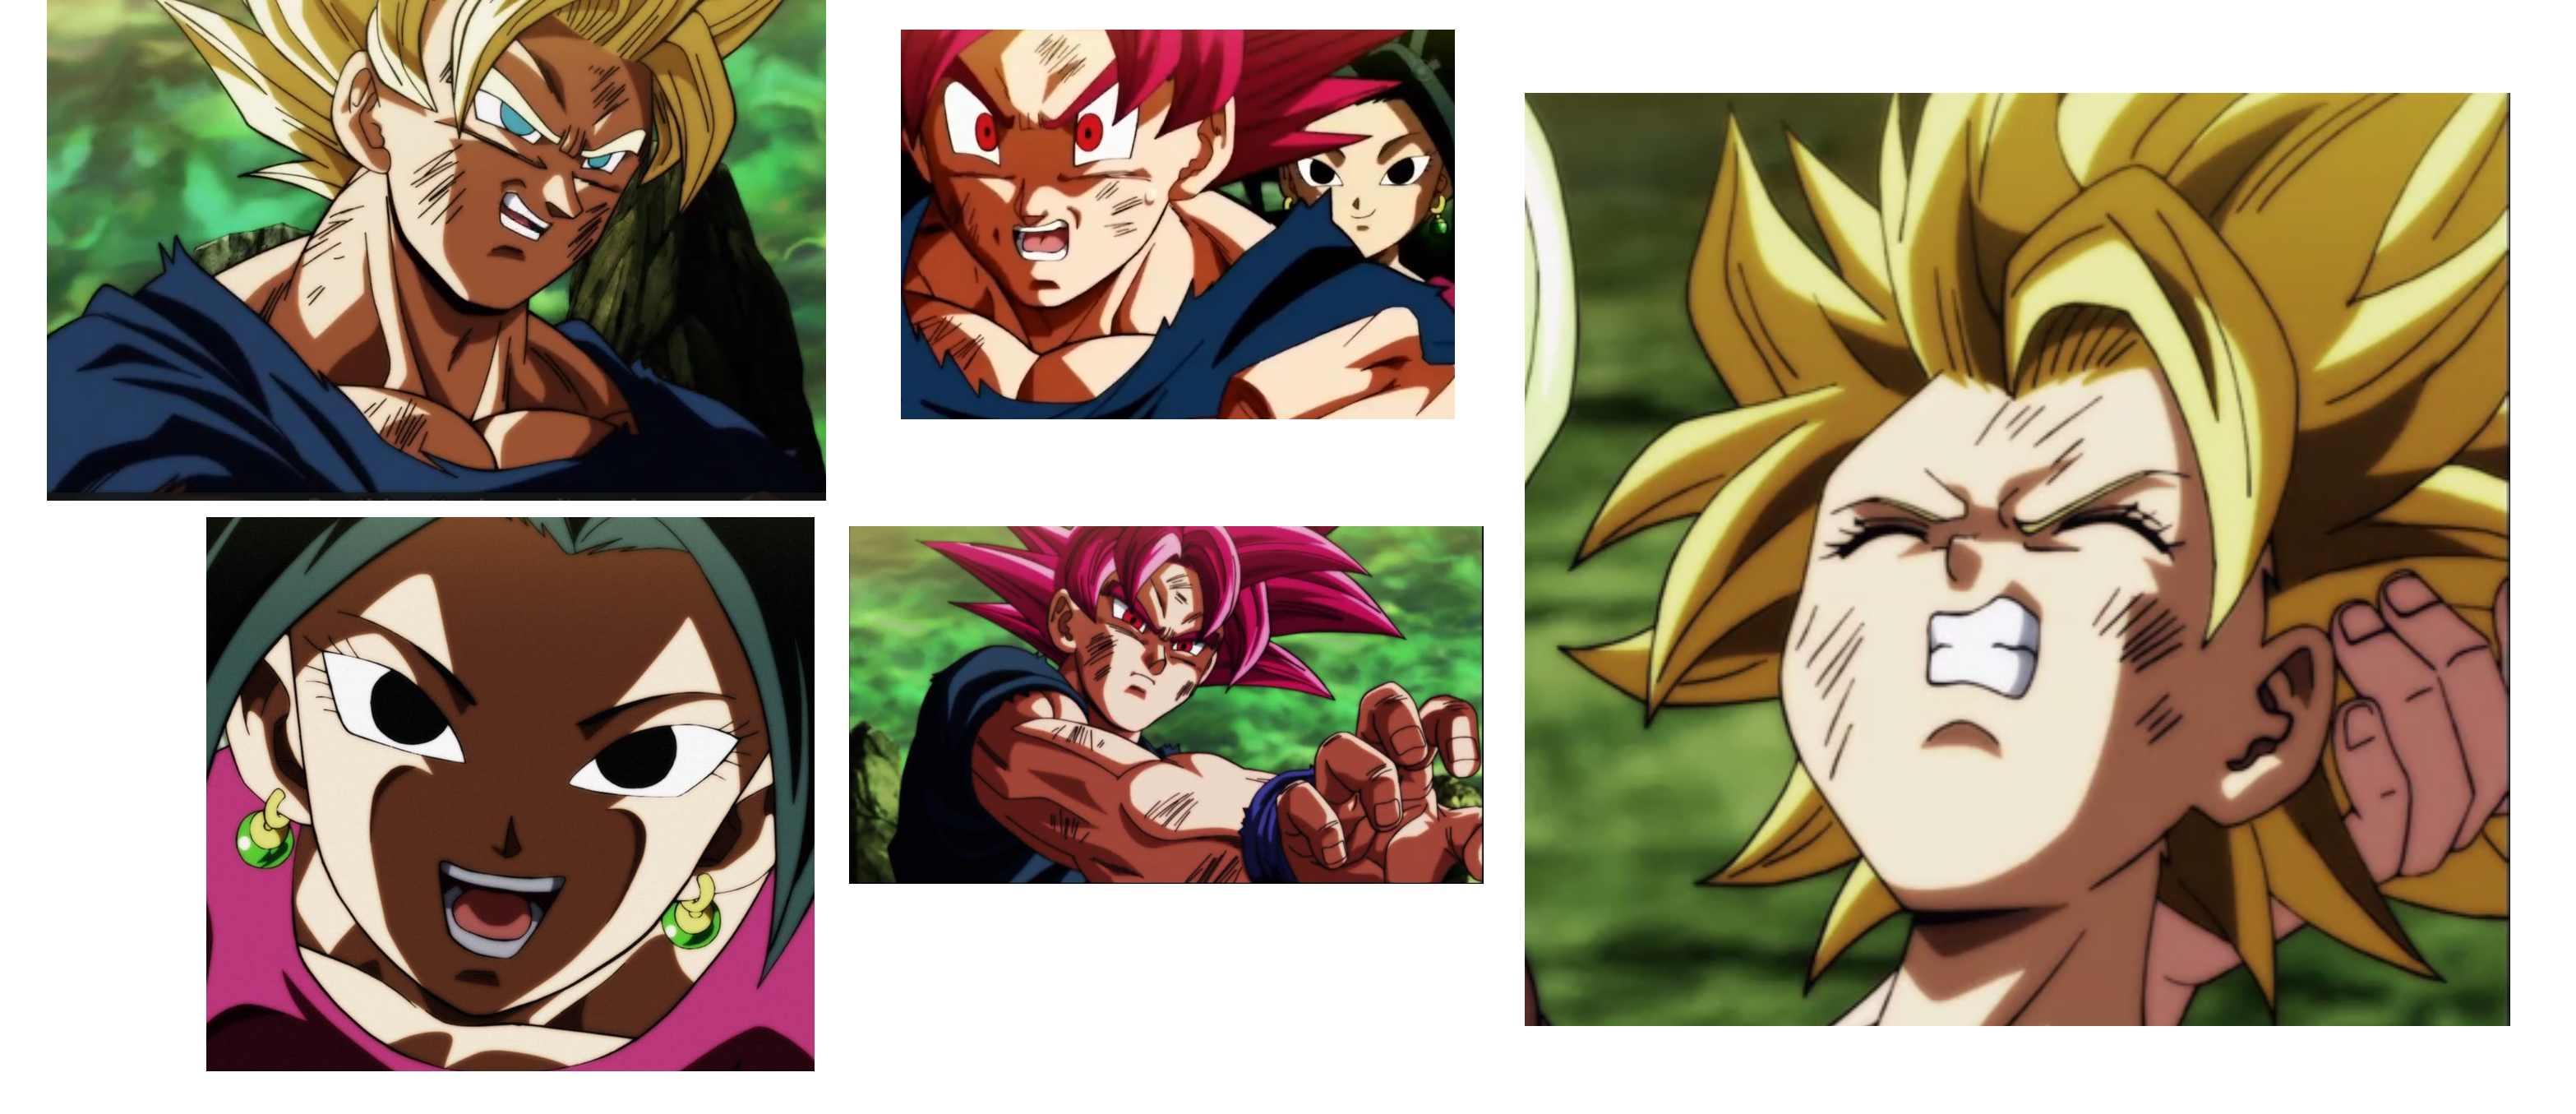 Drawing comparisons dragon ball z. What exactly do people